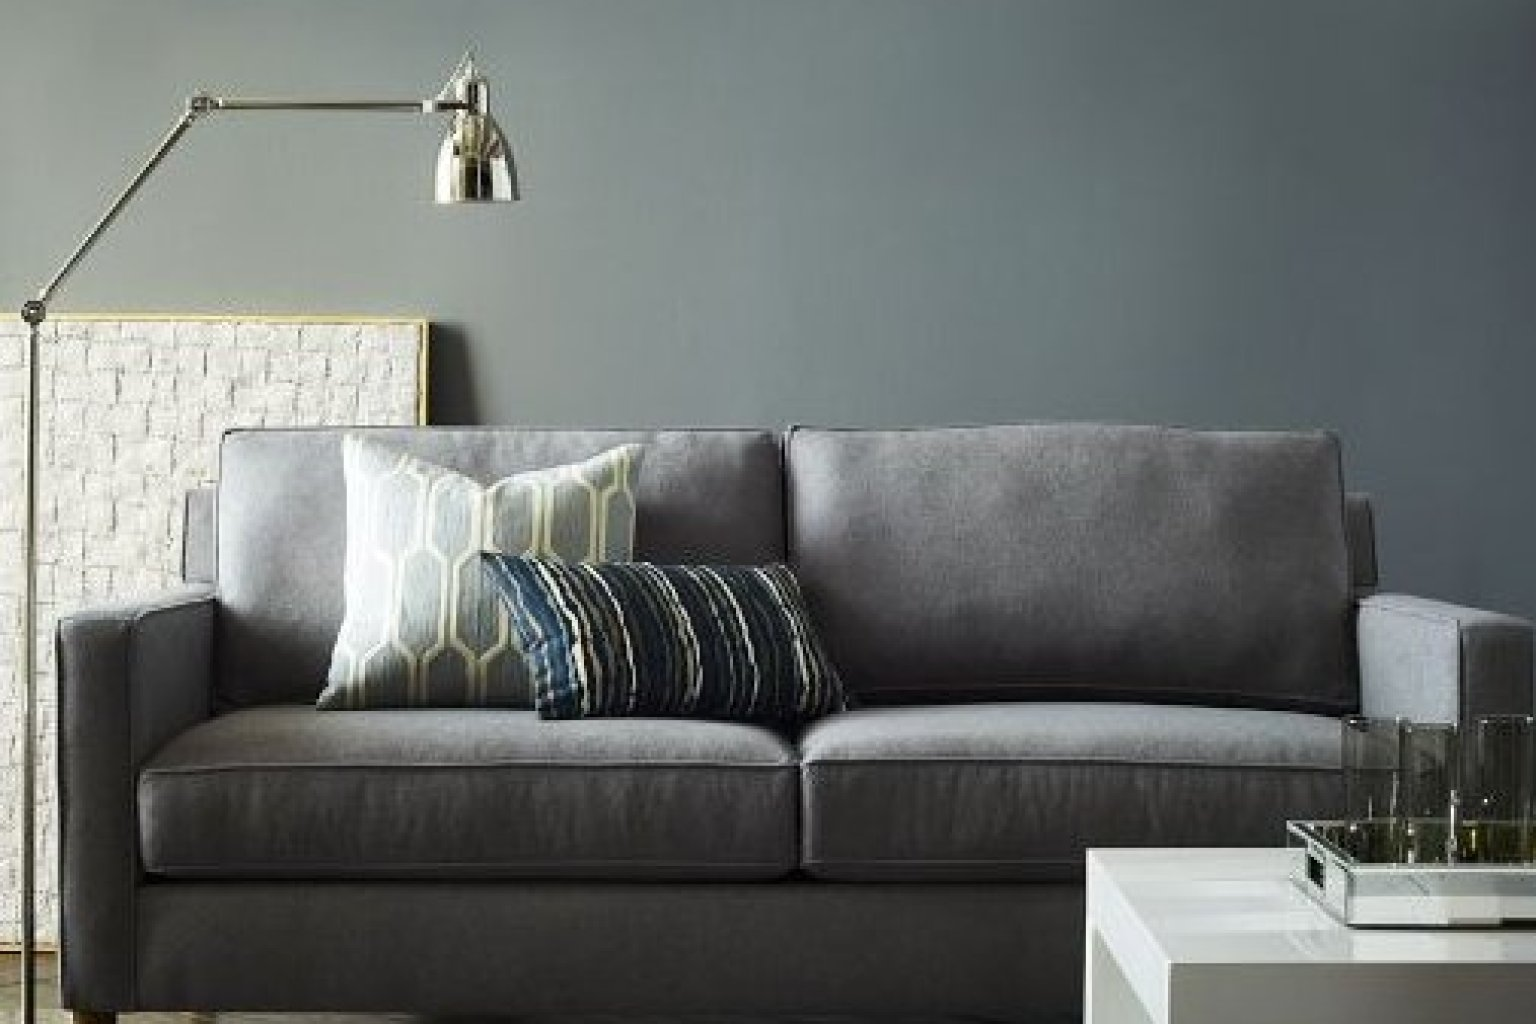 6 couches for small apartments that will actually fit in for Small apartment chairs